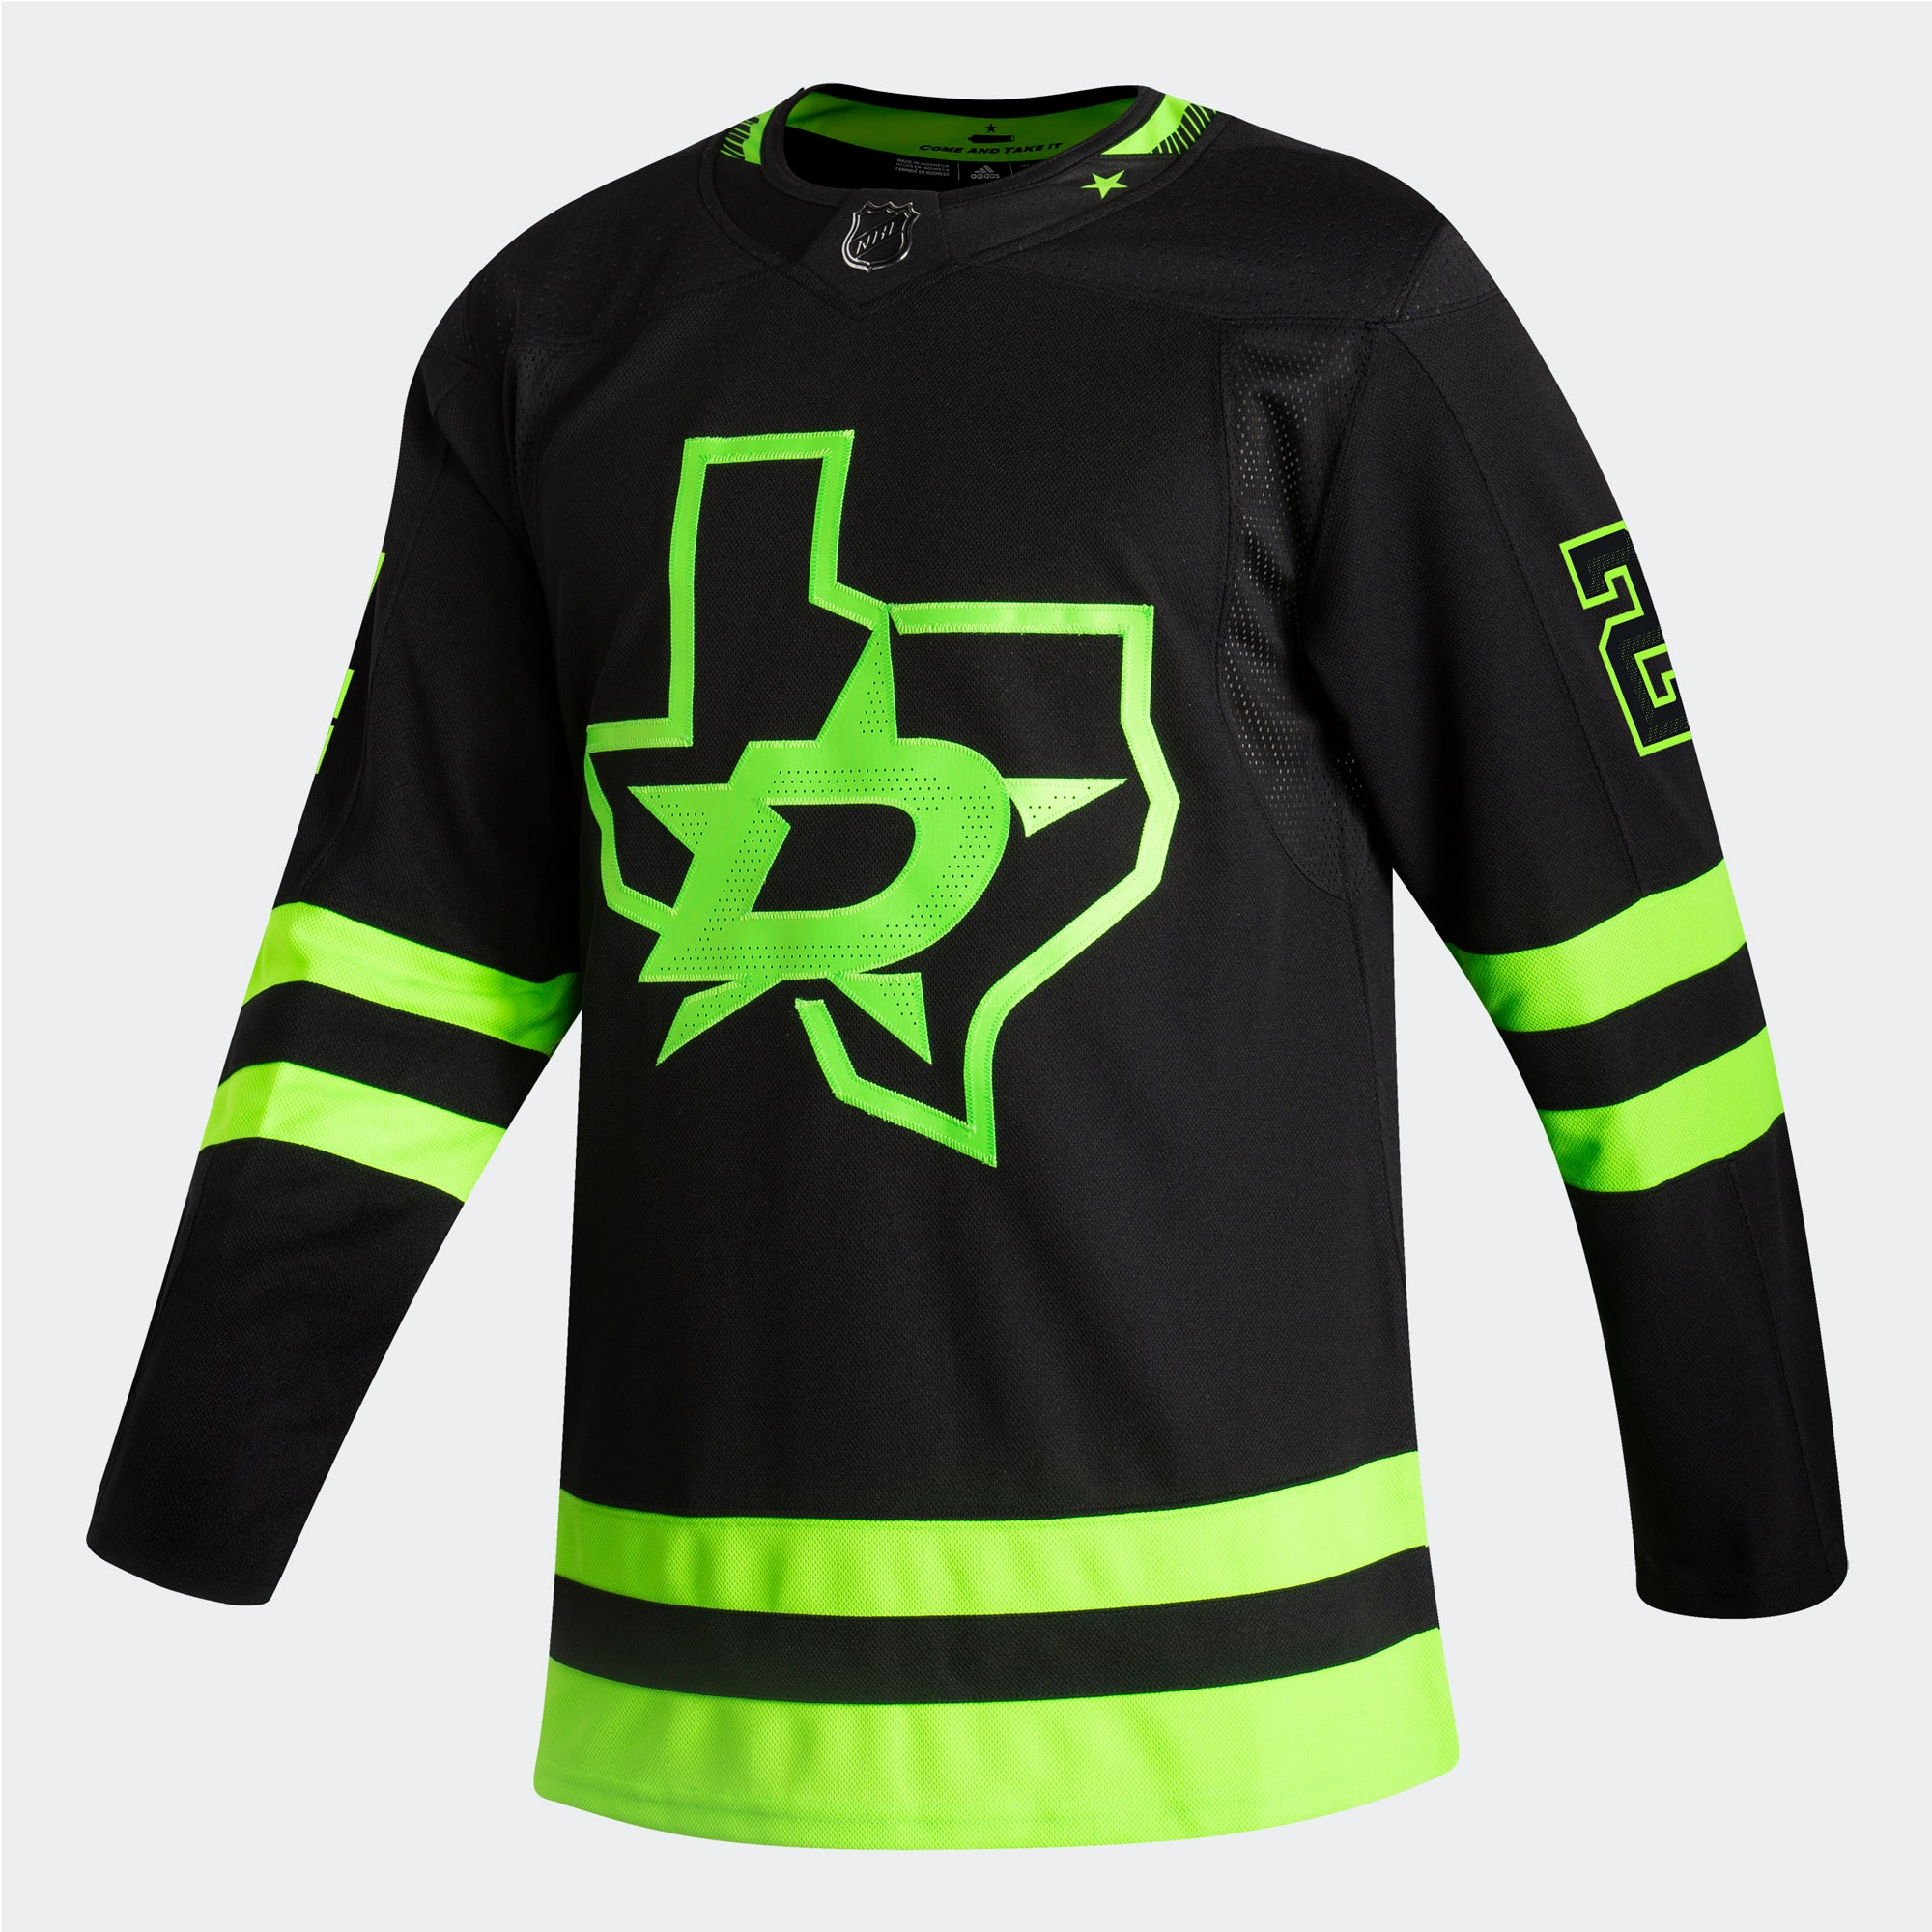 DALLAS STARS ADIDAS BLACKOUT 3RD ROOPE HINTZ AUTHENTIC PRO JERSEY